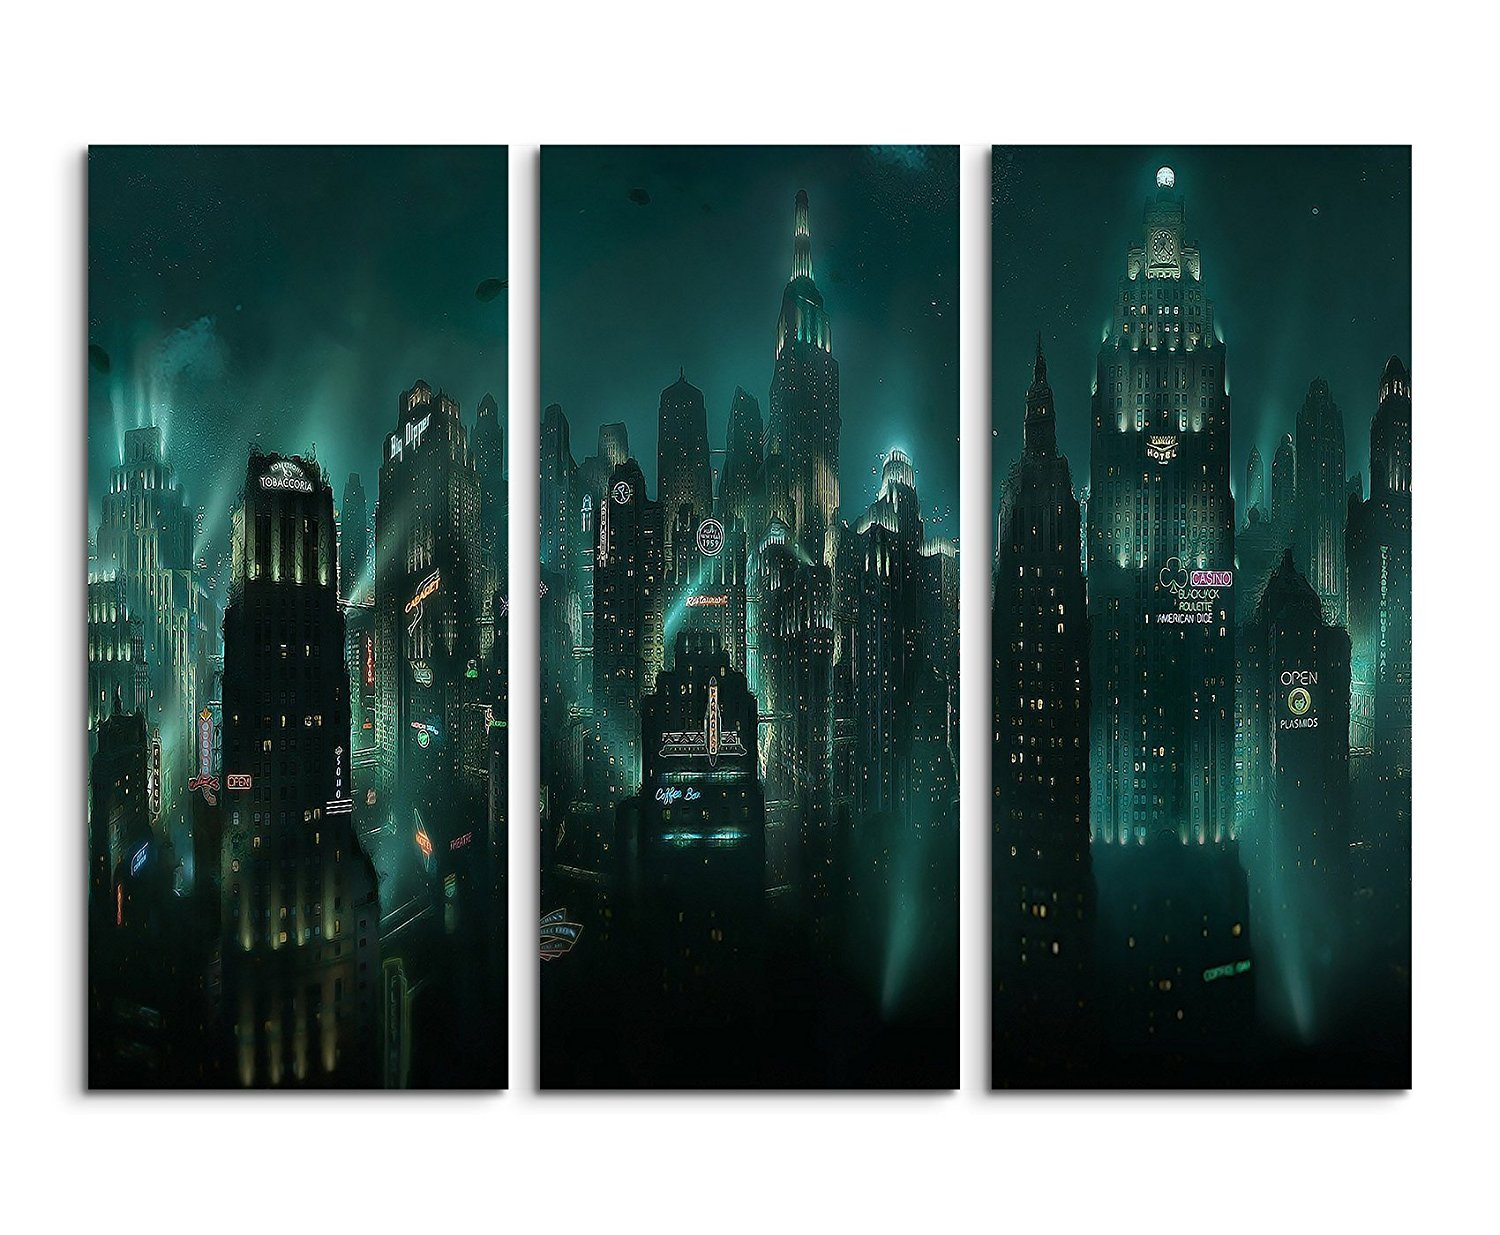 Canvas picture print on canvas set of 3 bioshock rapture total 120 fine art print on real canvas as a wall picture with stretcher frame